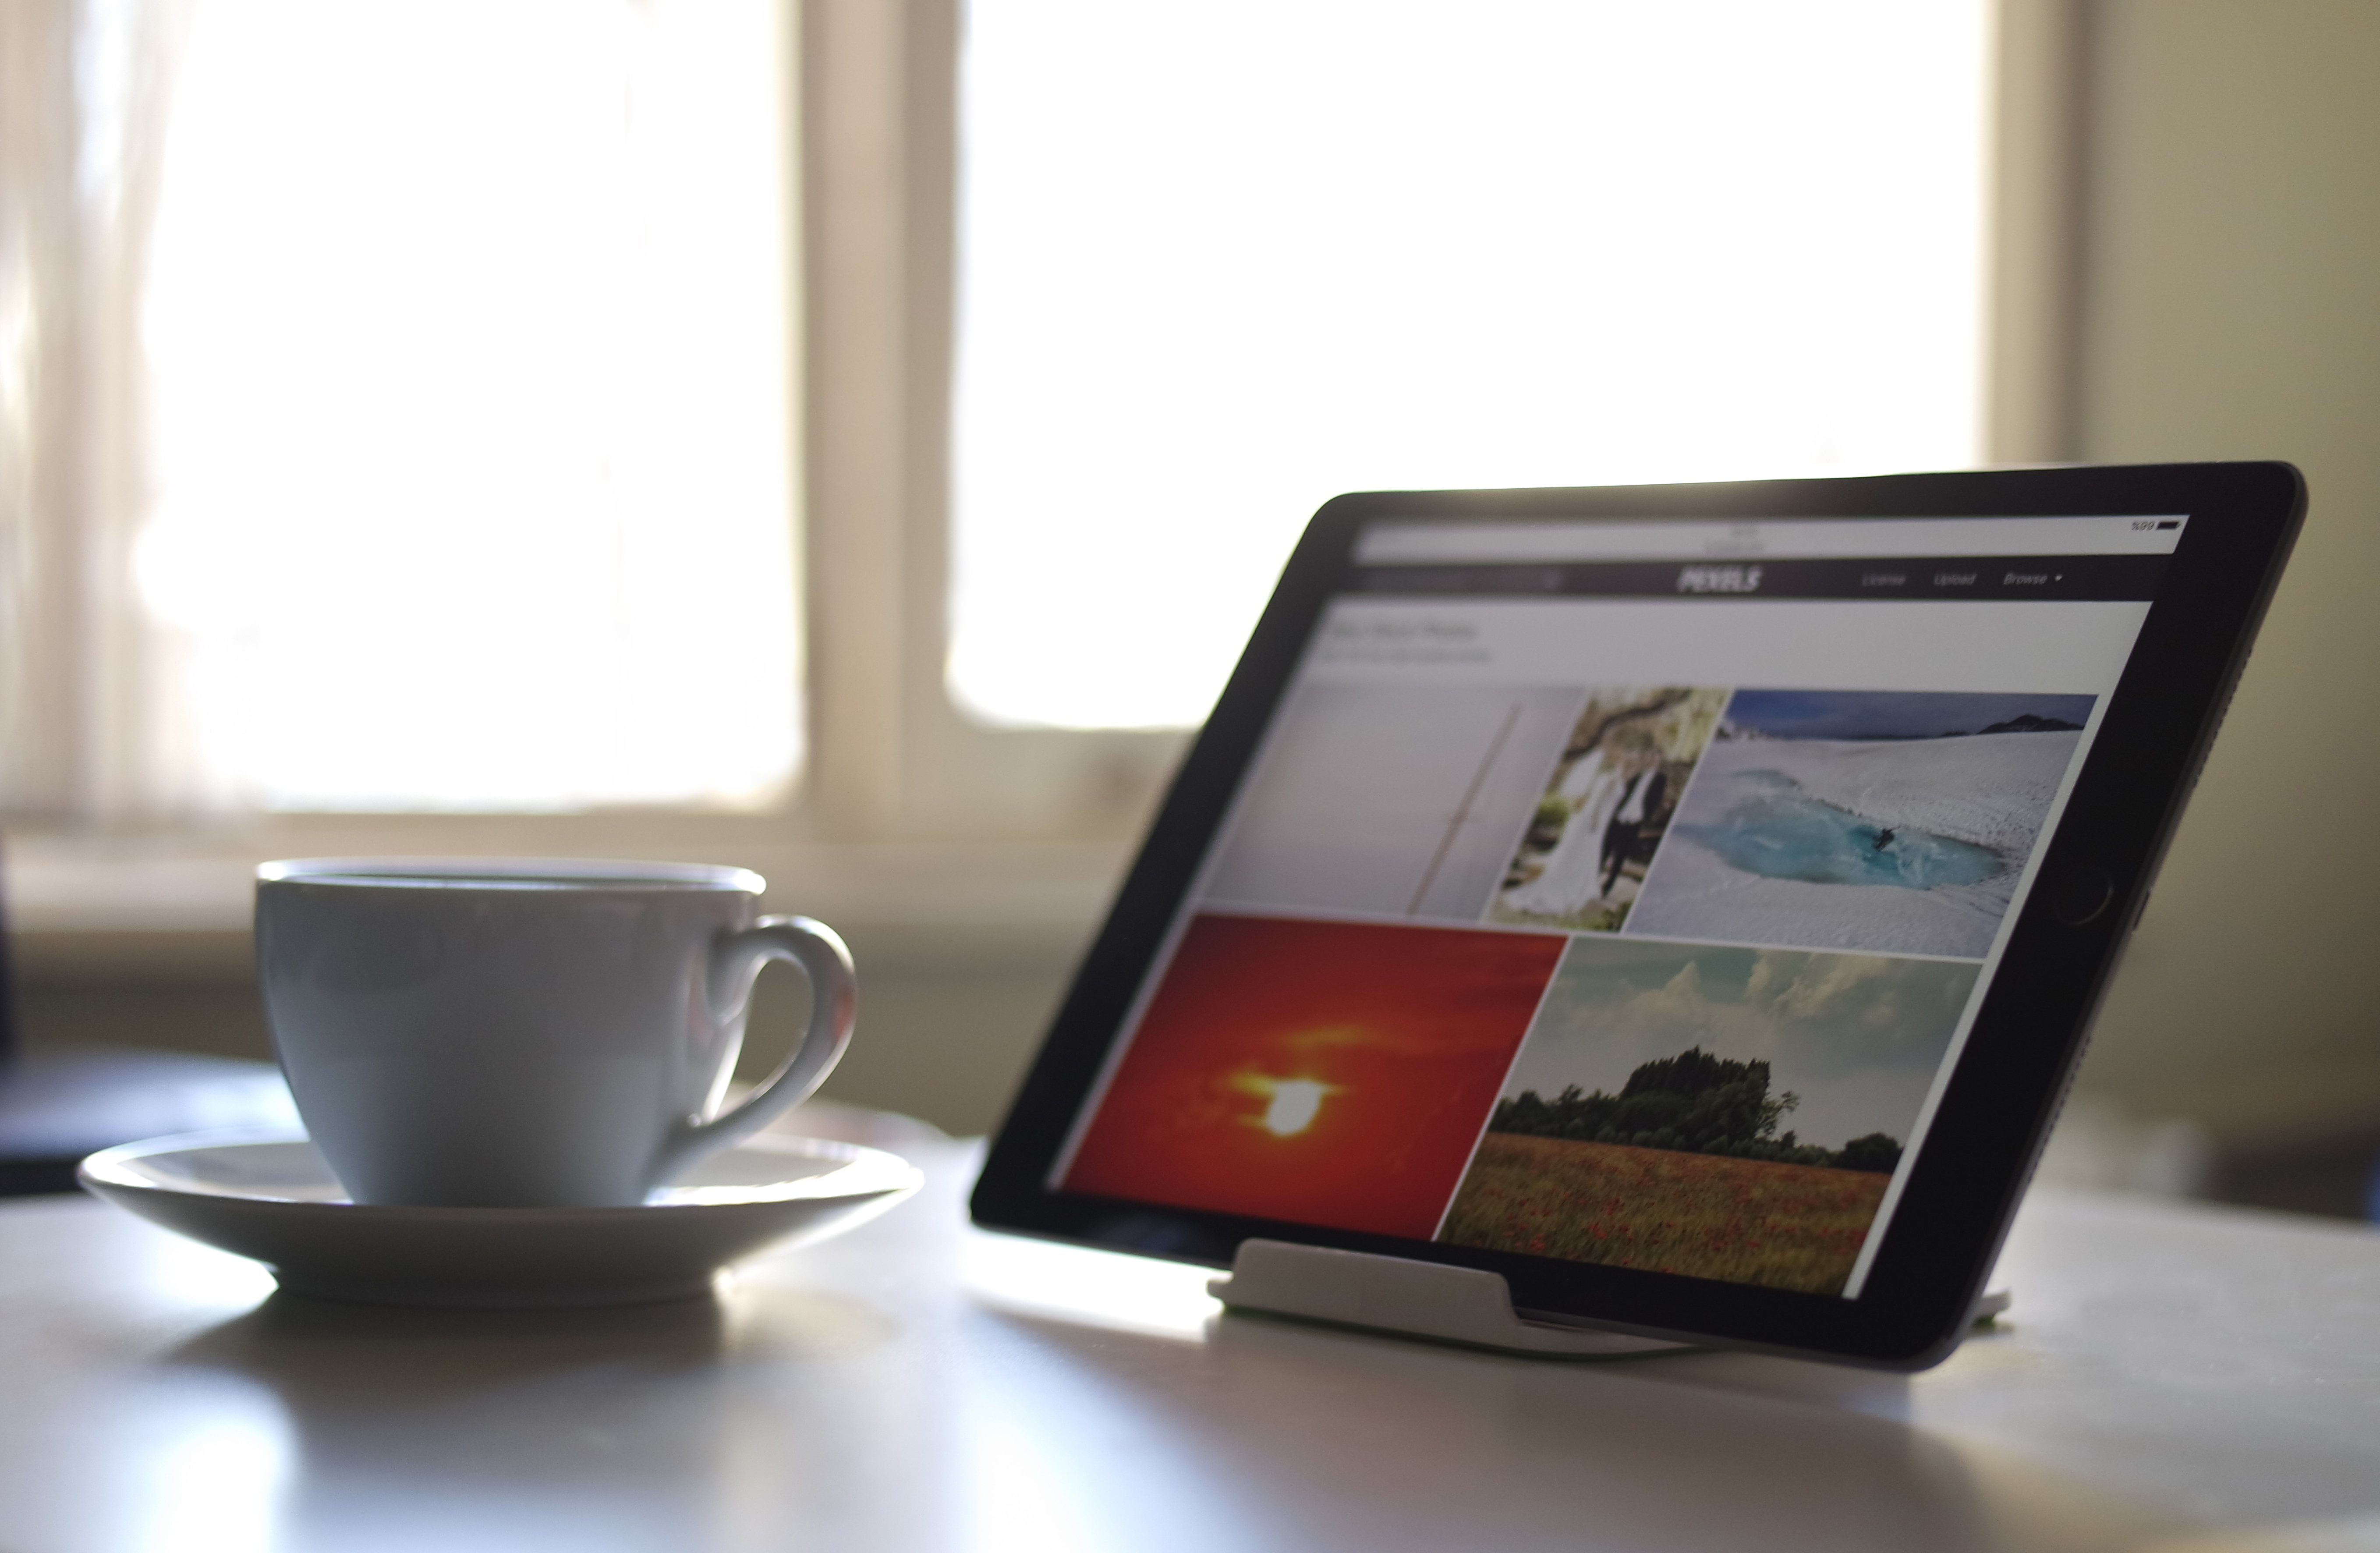 Ipad Size Chart: Black Tablet Computer Near a White Ceramic Teacup · Free Stock Photo,Chart